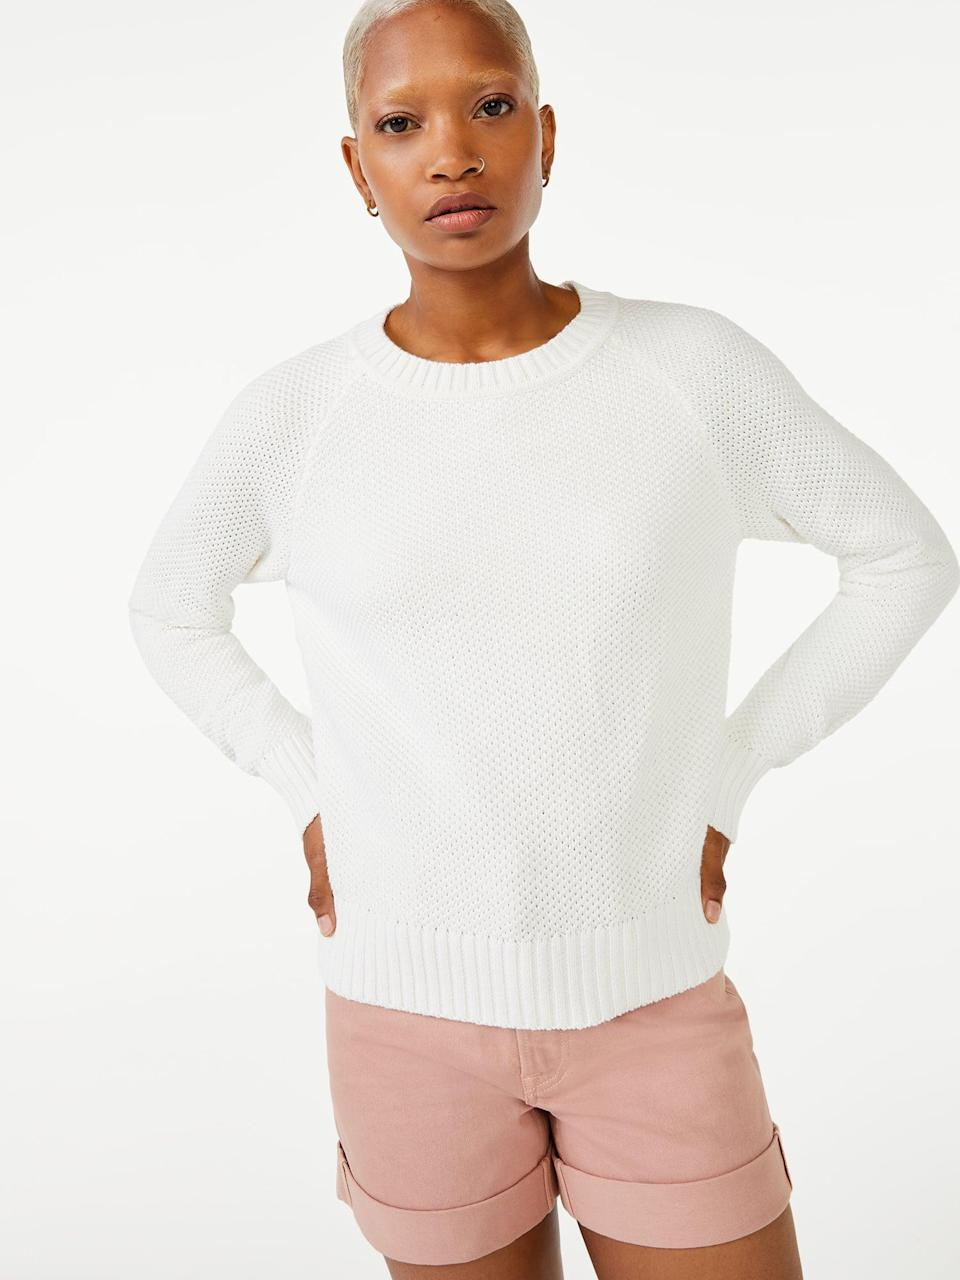 """<p>Who says you can't wear white after Labor Day? The <span>Free Assembly Women's Raglan Novelty Stitch Sweater</span> ($26) makes a strong case for ditching the outdated fashion """"rule.""""</p>"""